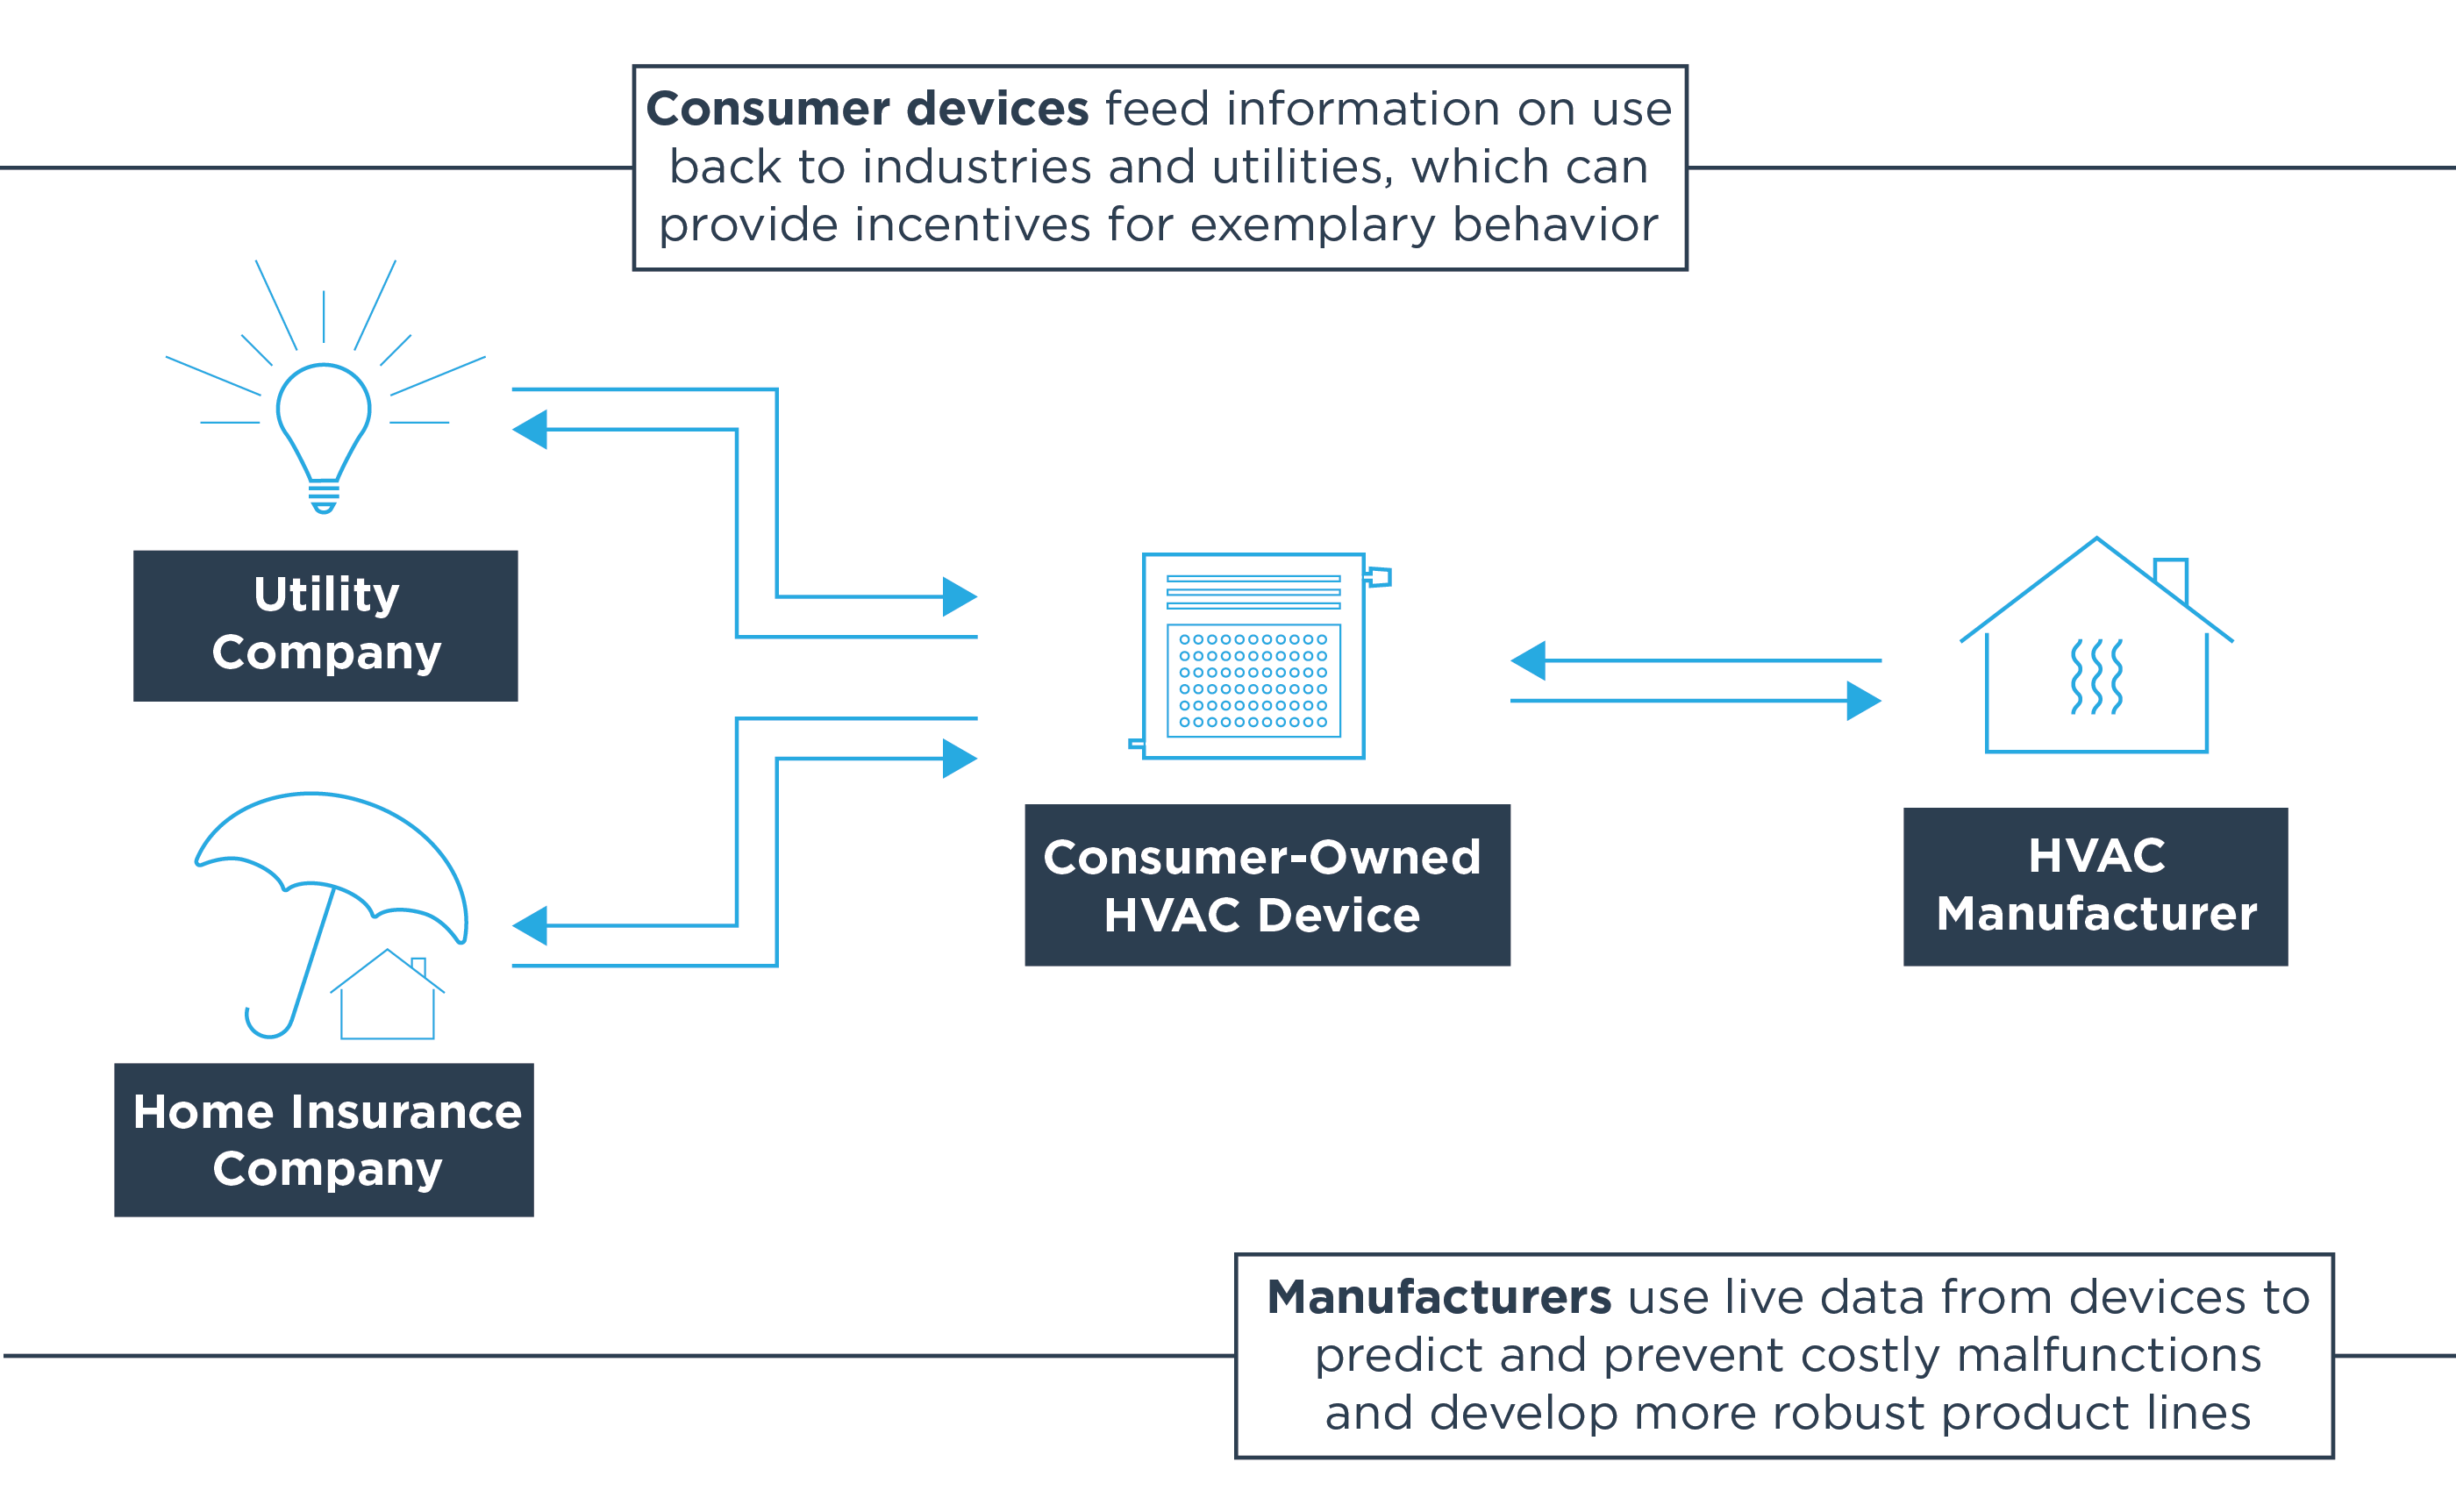 Consumer devices feed information on use back to industries and utilities, which can provide incentives for exemplary behavior. Manufacturers use live data from devices to predict and prevent costly malfunctions and develop more robust product lines.